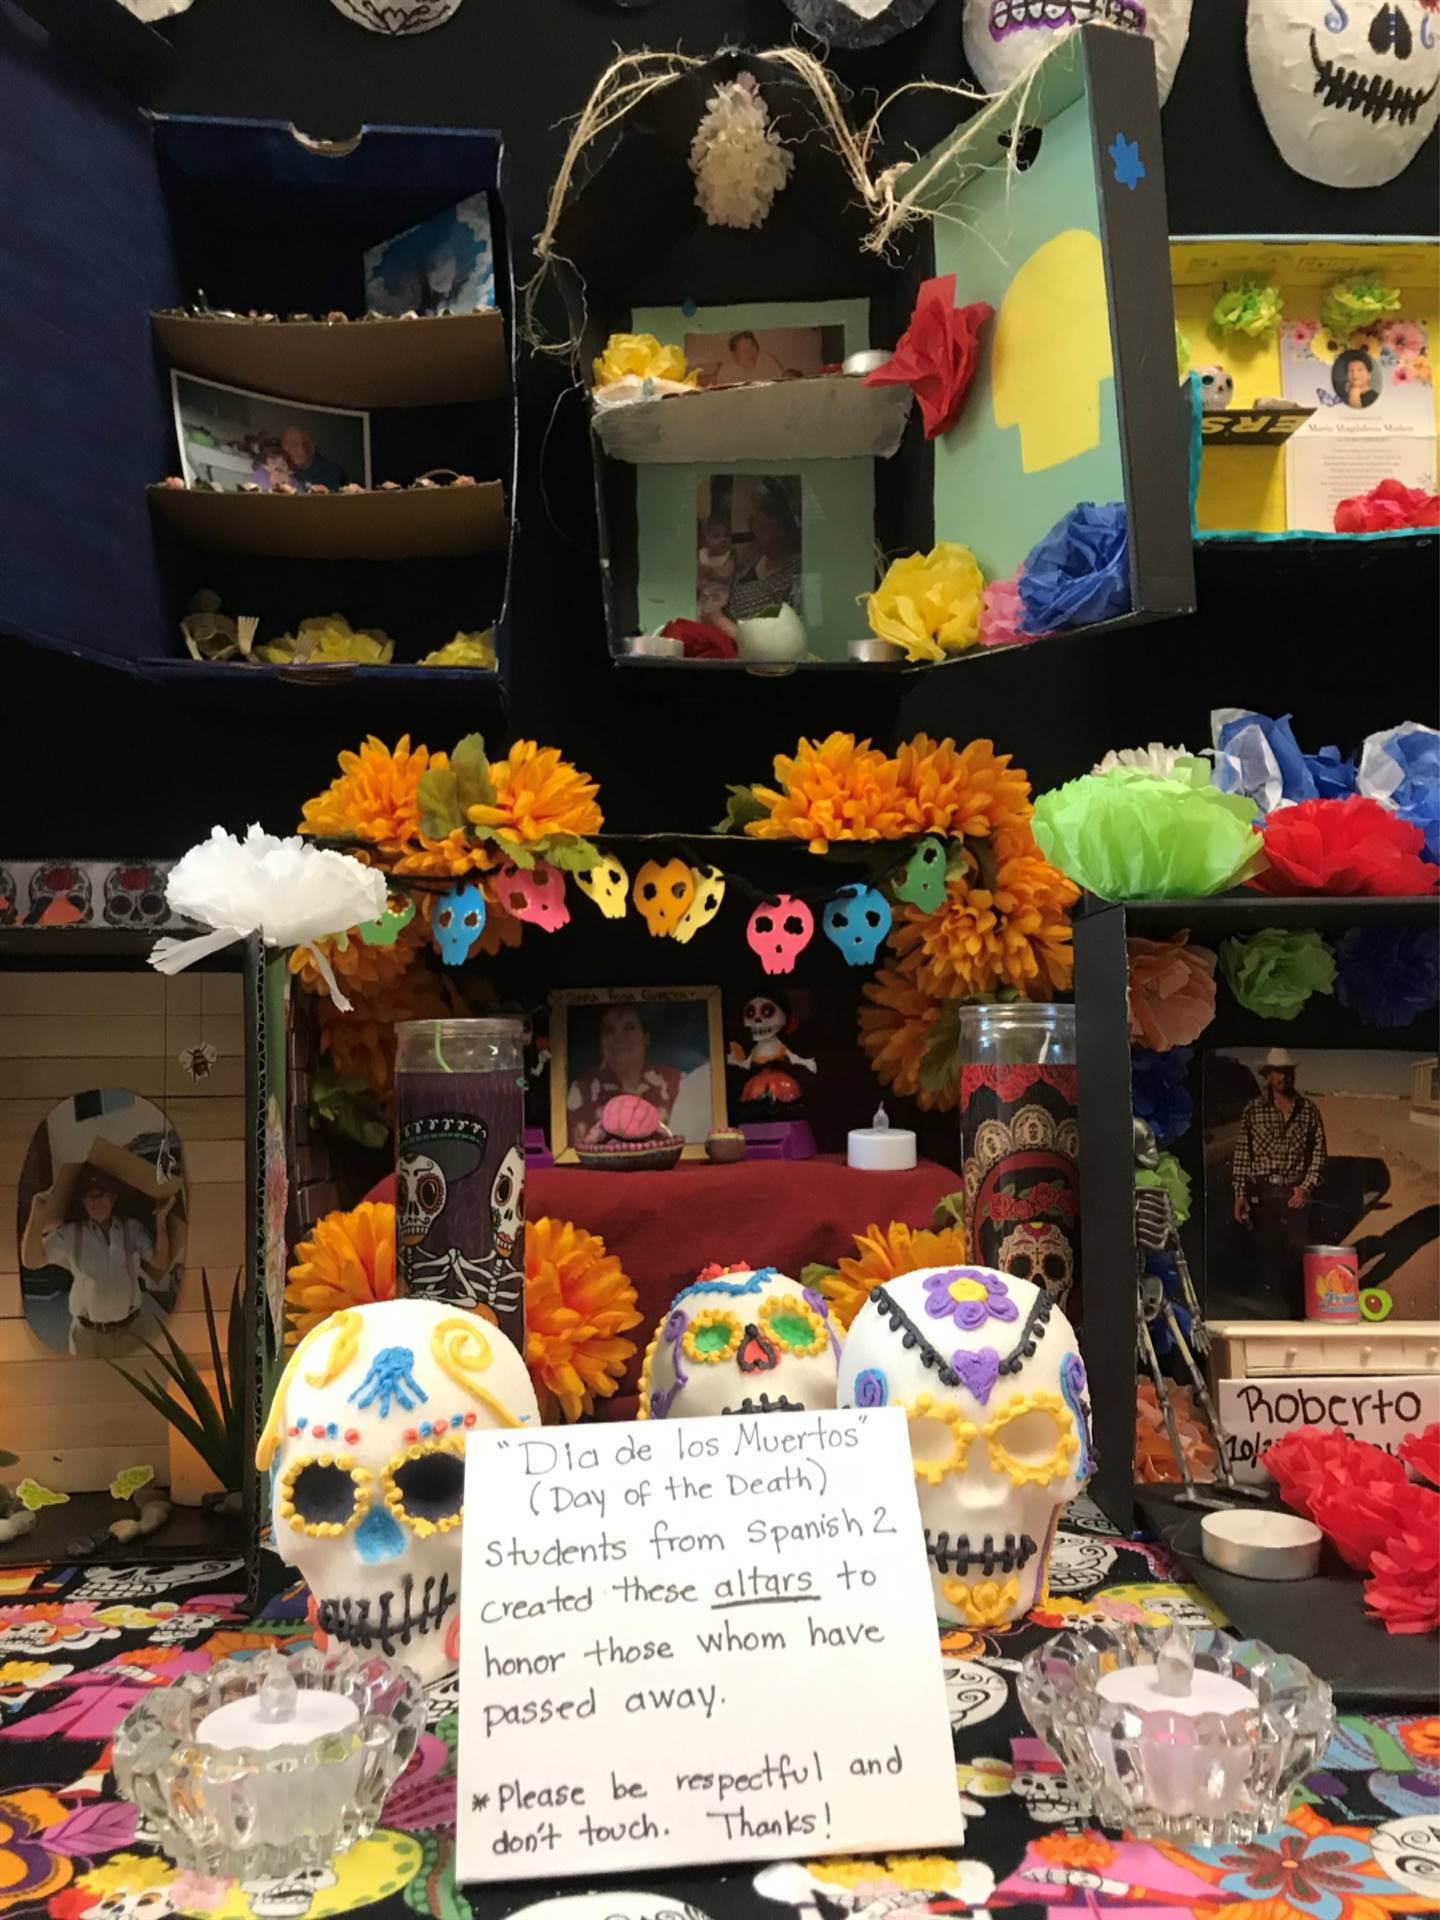 Spanish Classes Day Of Dead 20191031 (3)